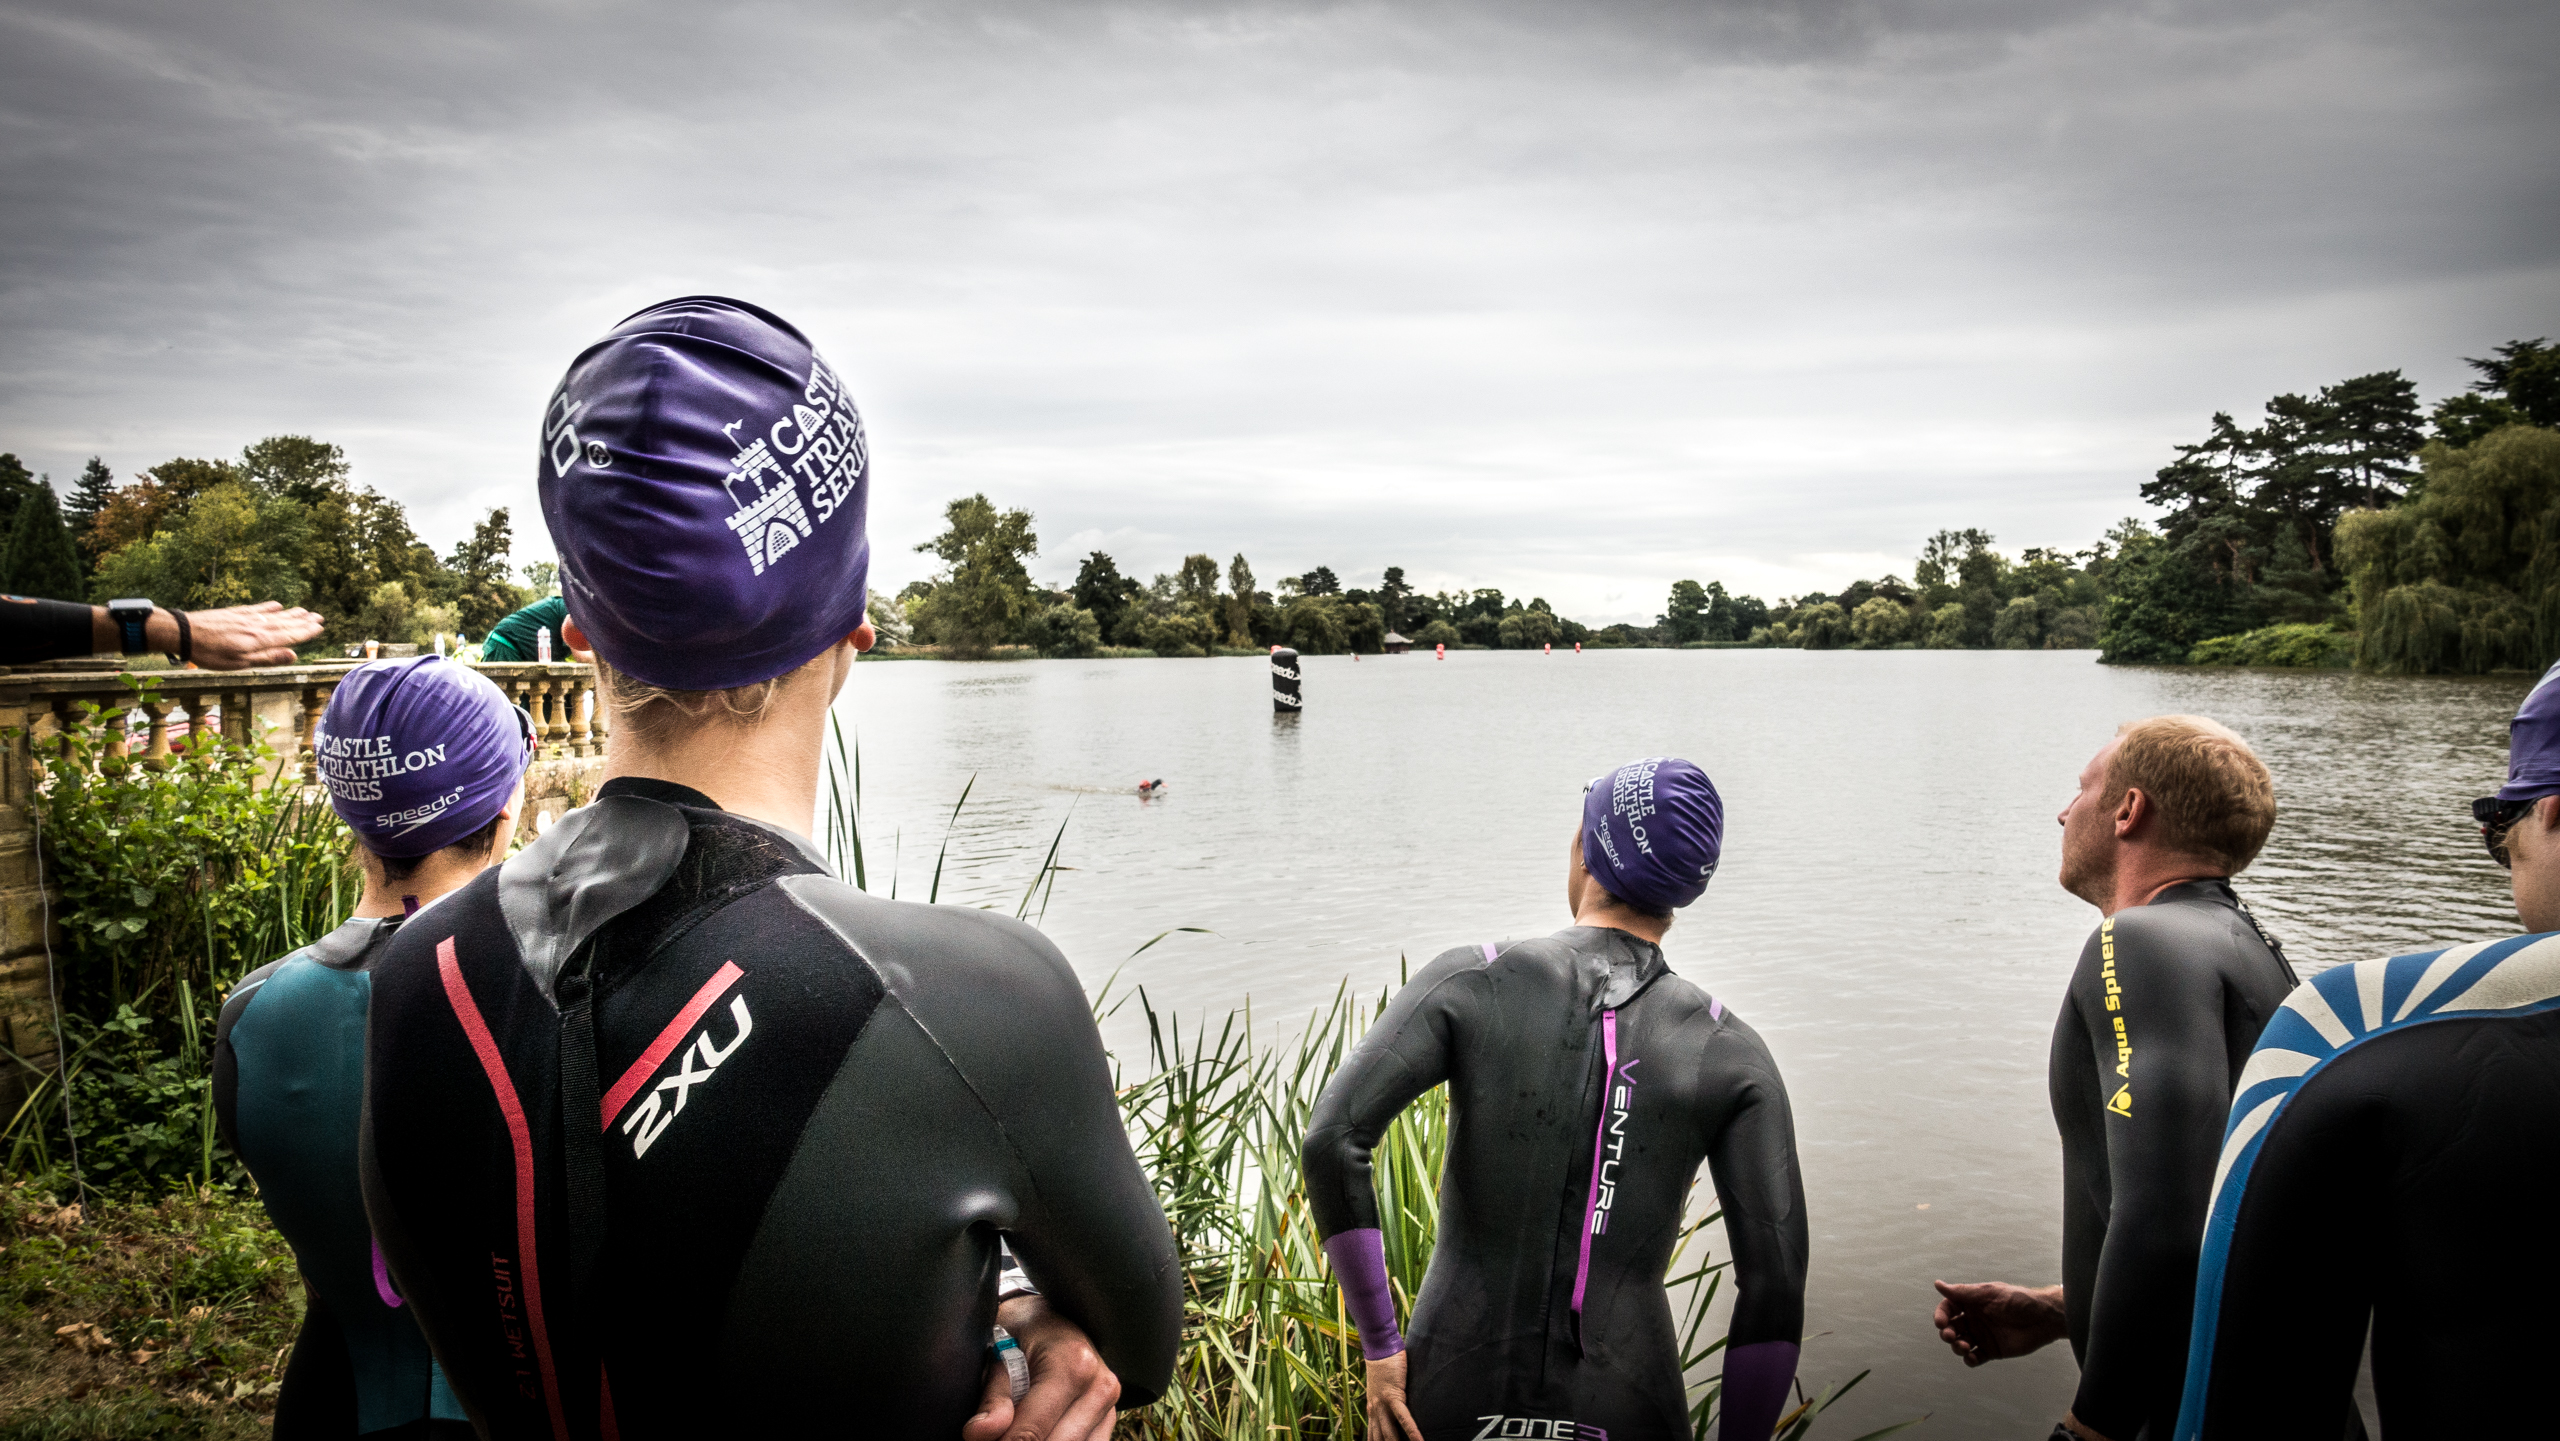 My new Sony RX100 IV and the Hever Castle Triathlon